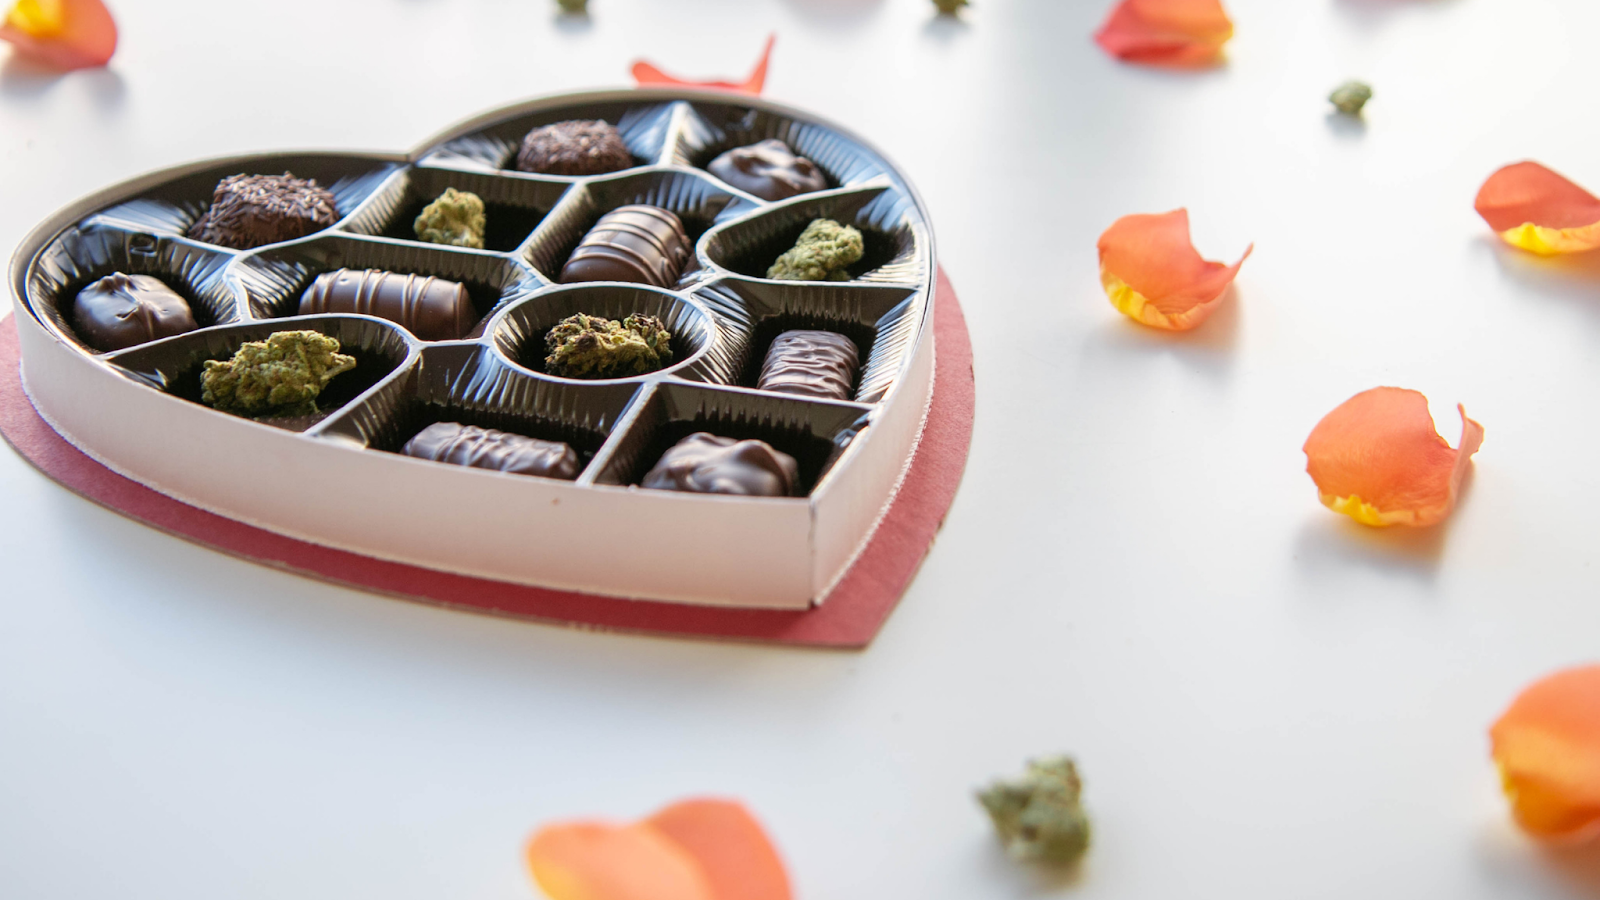 Chocolate edibles and cannabis buds in a heart-shaped box